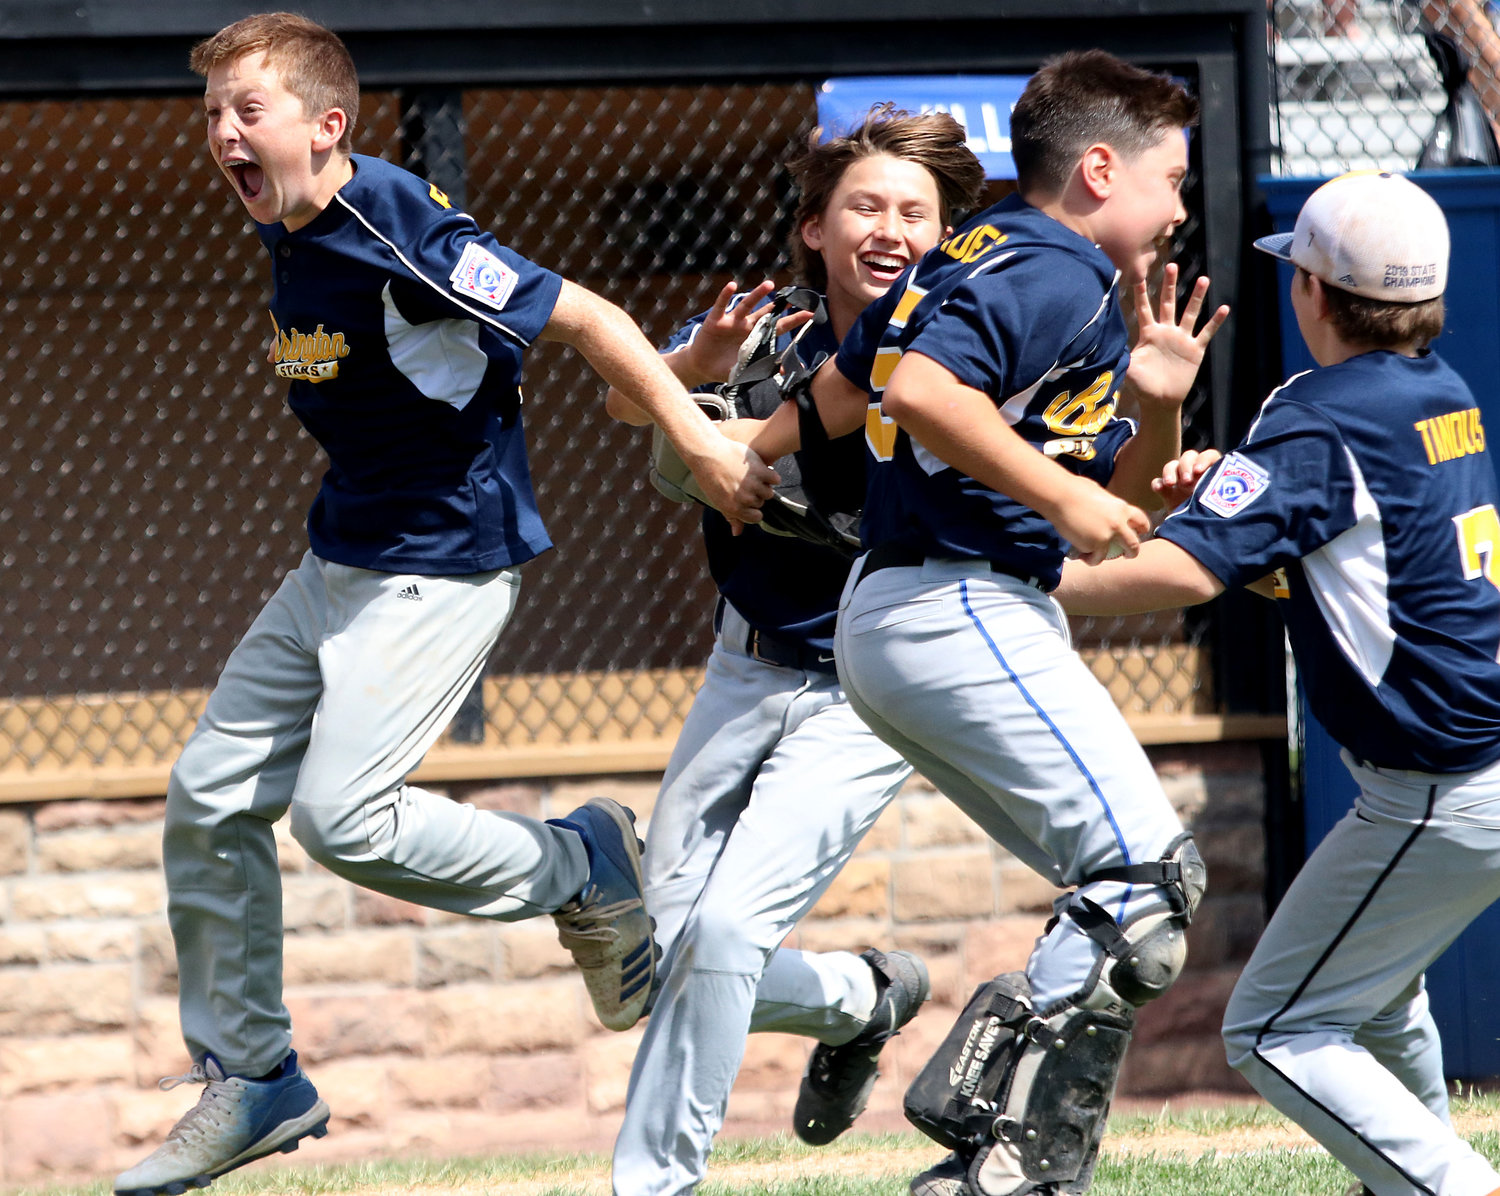 Owen Pfeffer, James Calderella, Bumpy Promades and Lucas Tanous celebrate after Barrington beat New Hampshire 6-4 to win the New England Regional Championship in Bristol, Conn., on Saturday afternoon.